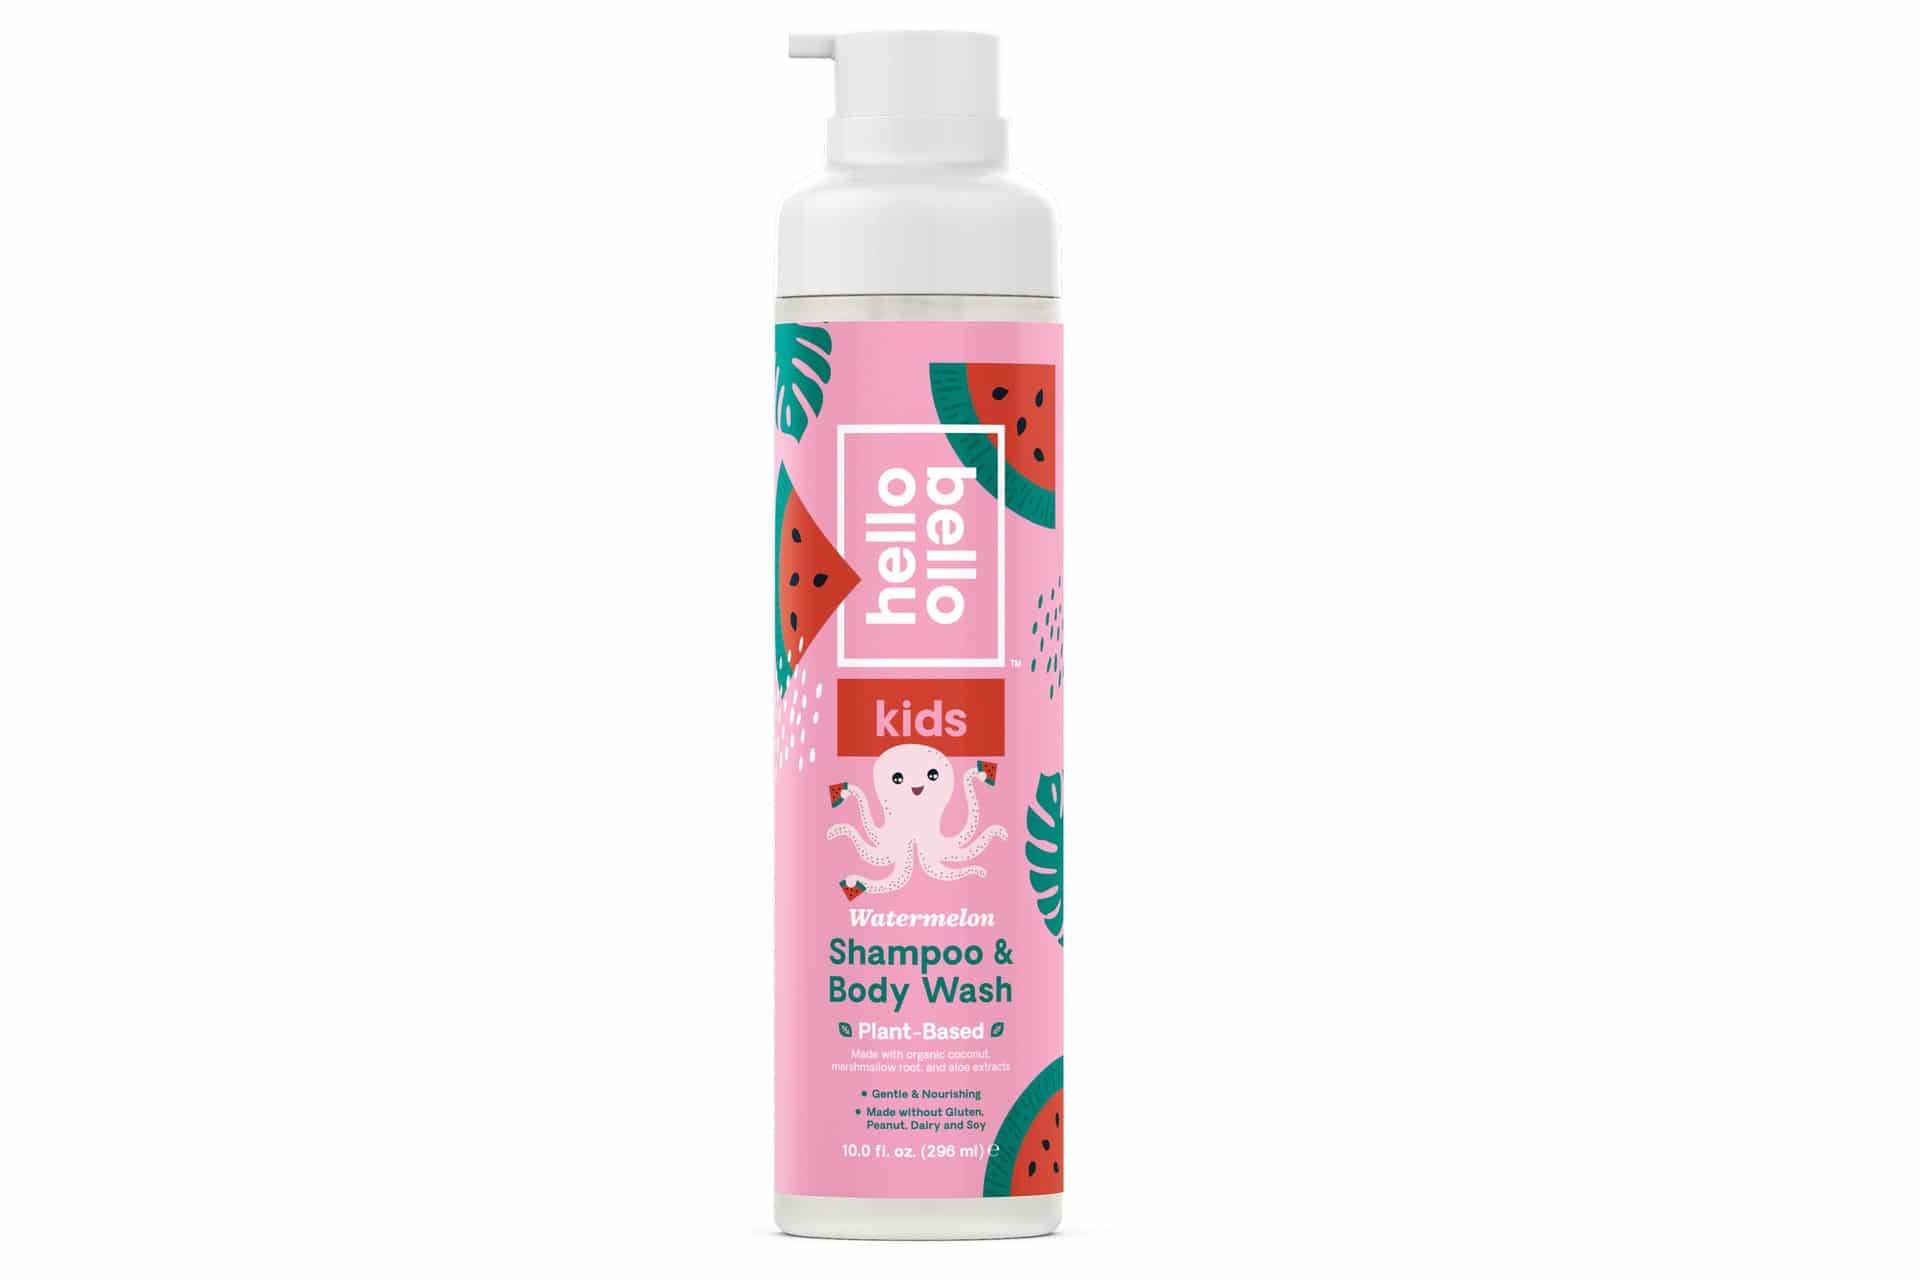 shampoo bottle with watermelon graphics